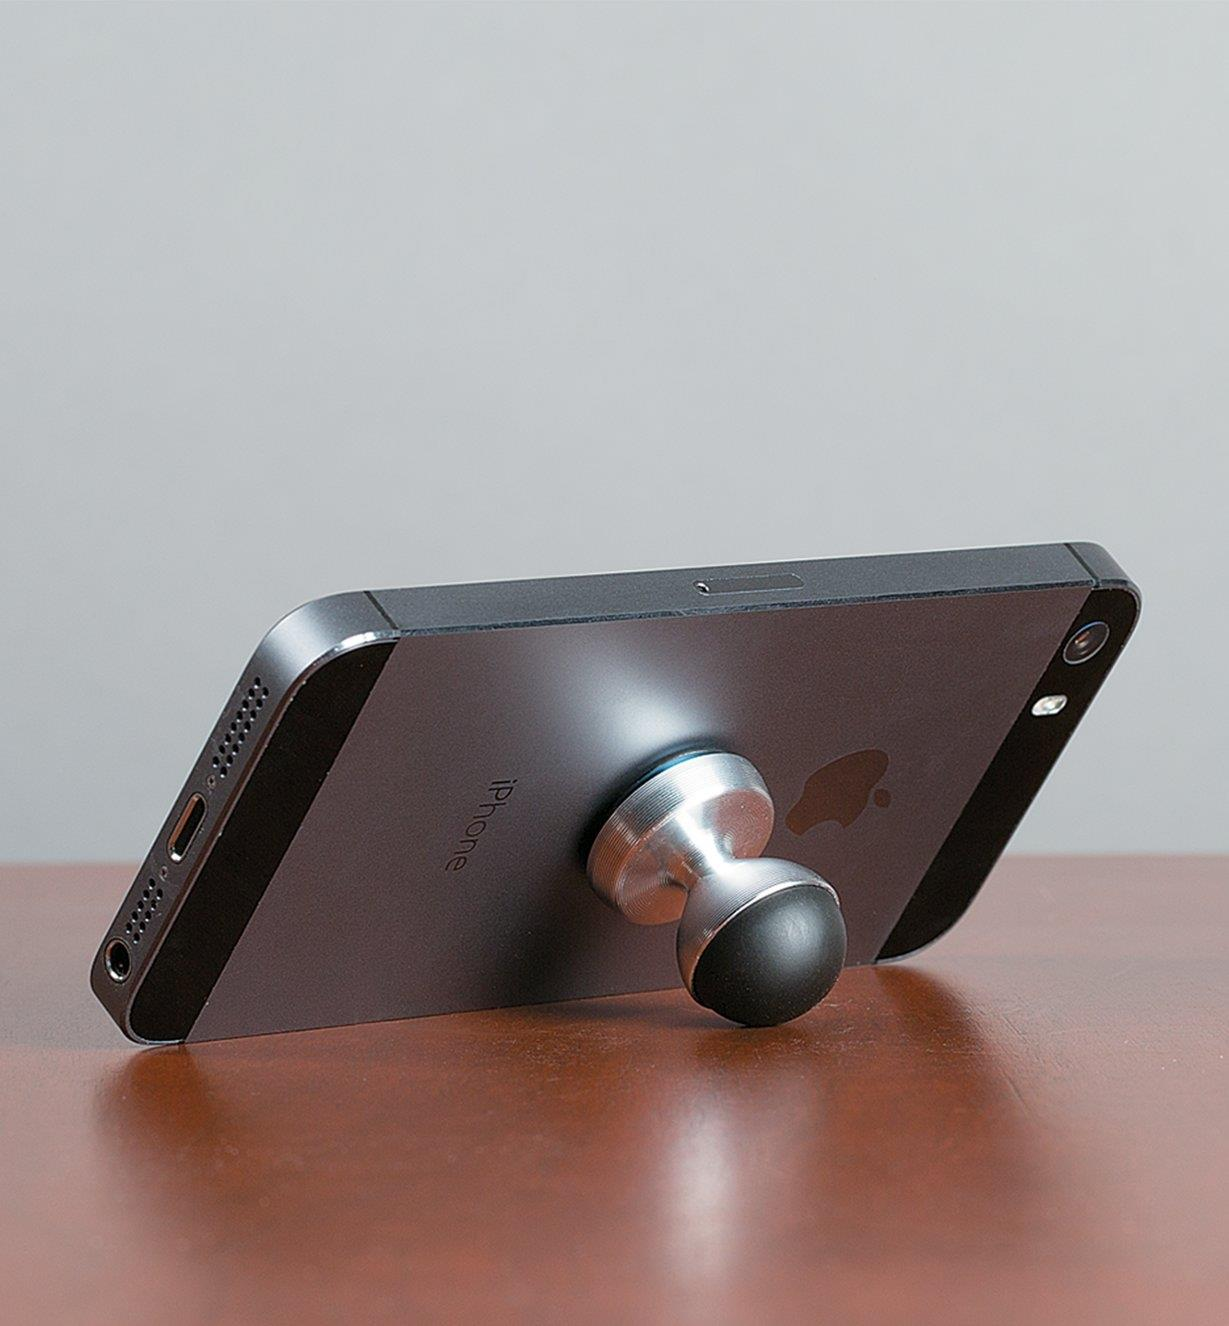 HobKnob attached to the back of a phone holding it at an angle on a table